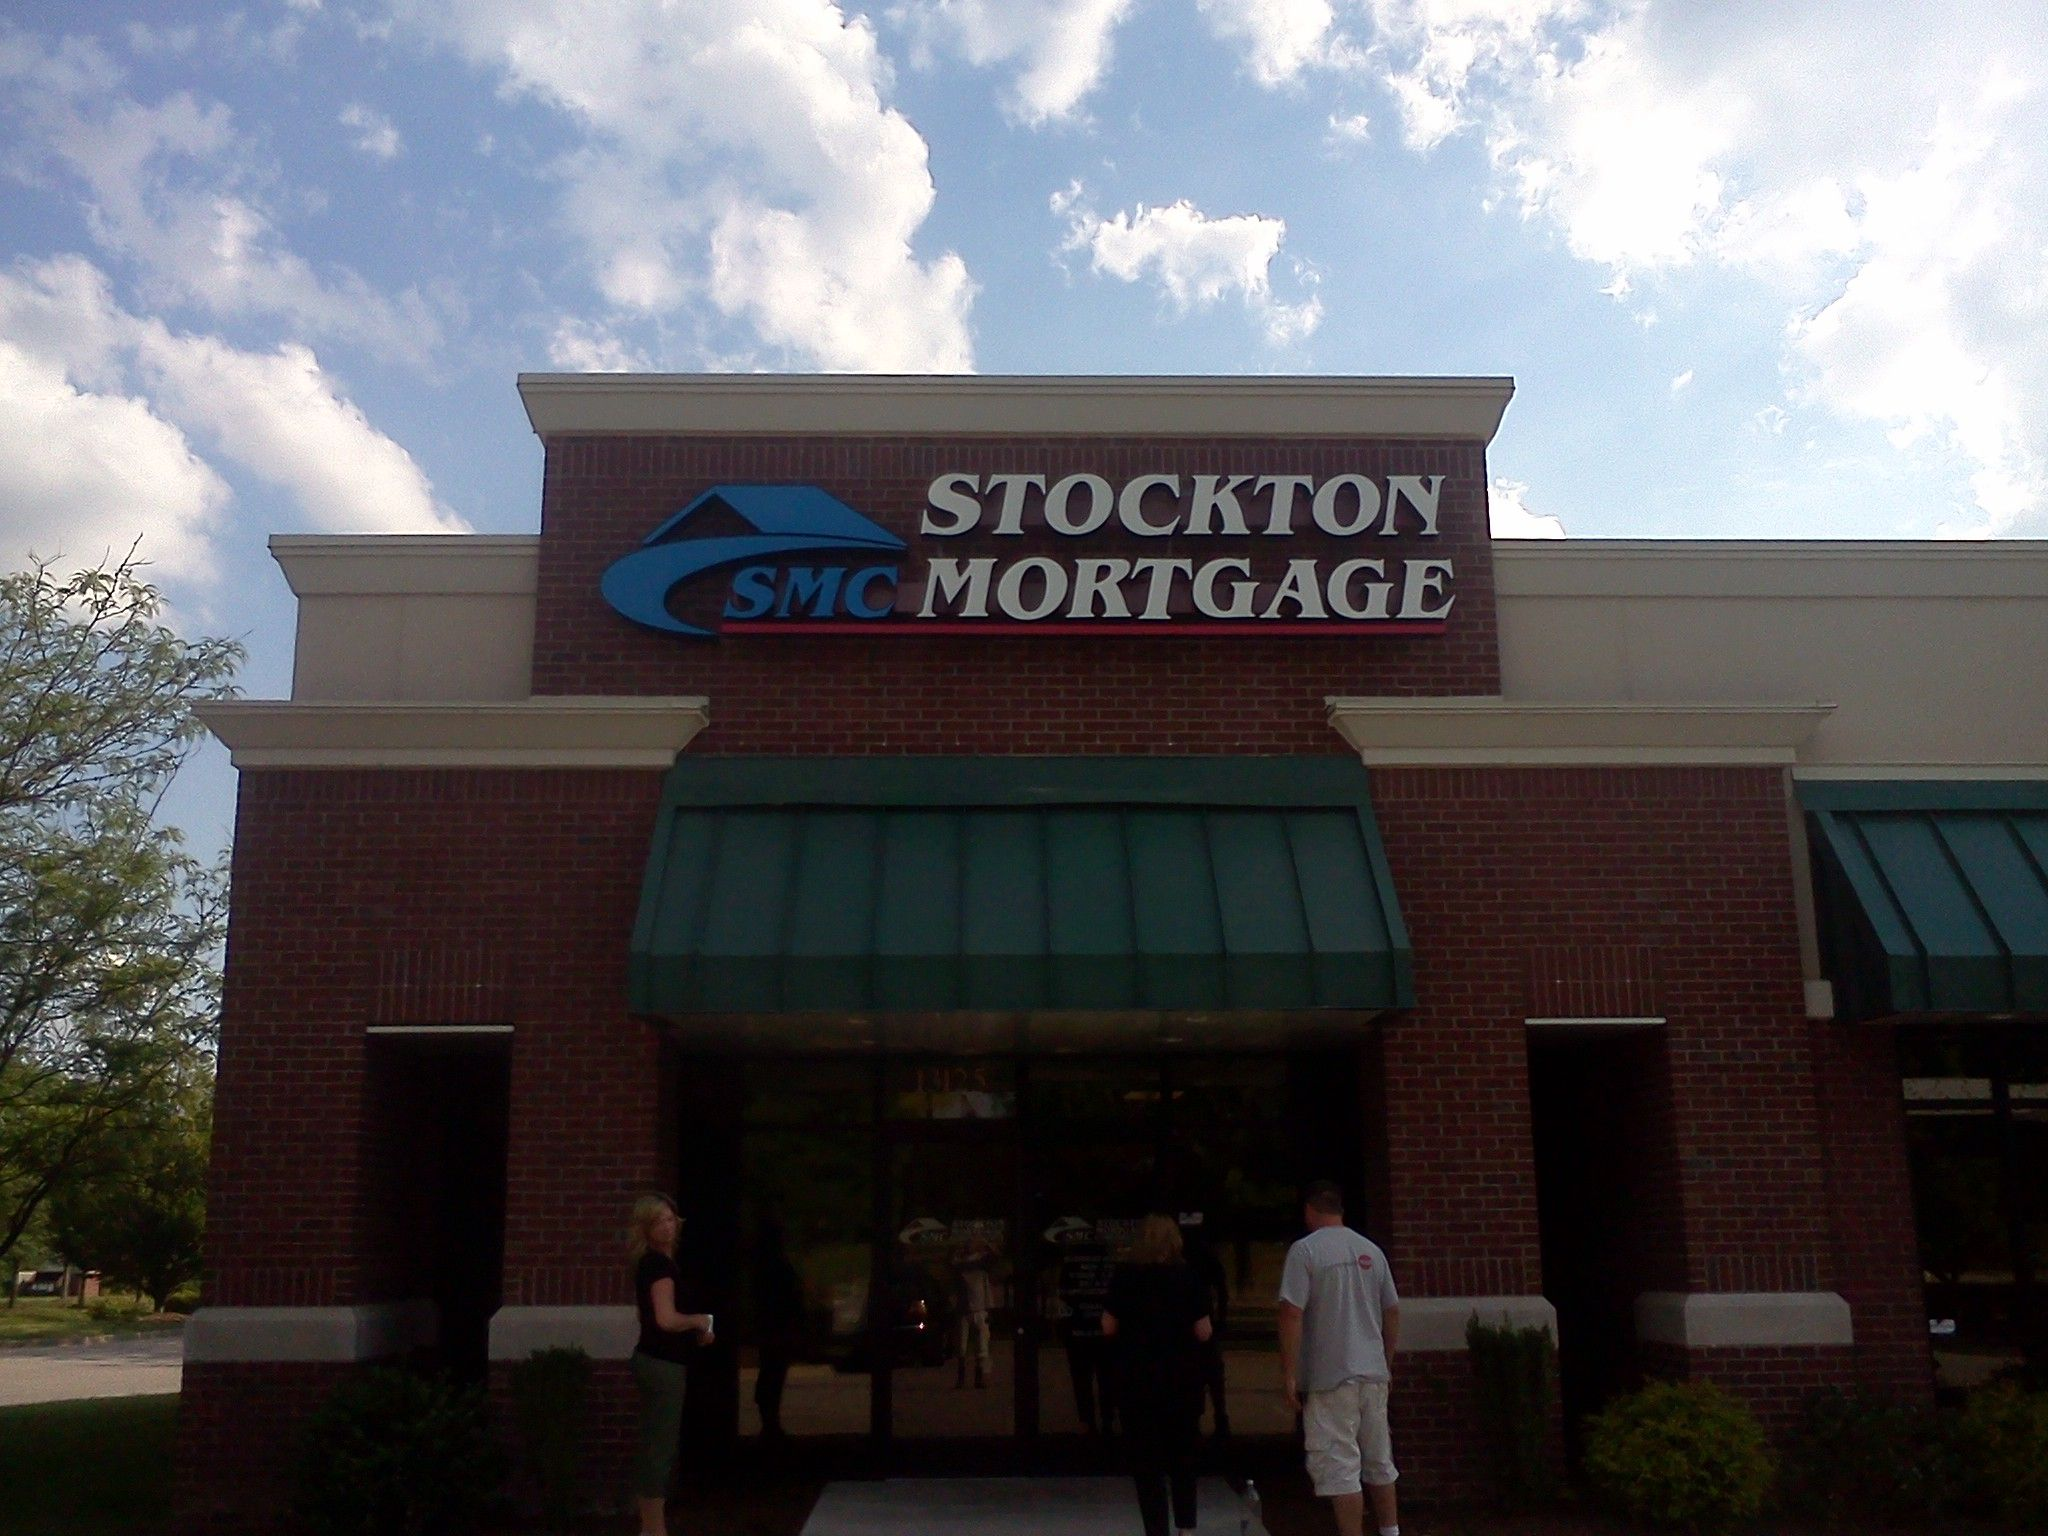 Stockton Mortgage Channel Letter Sign Stocktonmortgage Channelletters Businesssigns Outdoorsig Commercial Signs Channel Letter Signs Business Signs Outdoor